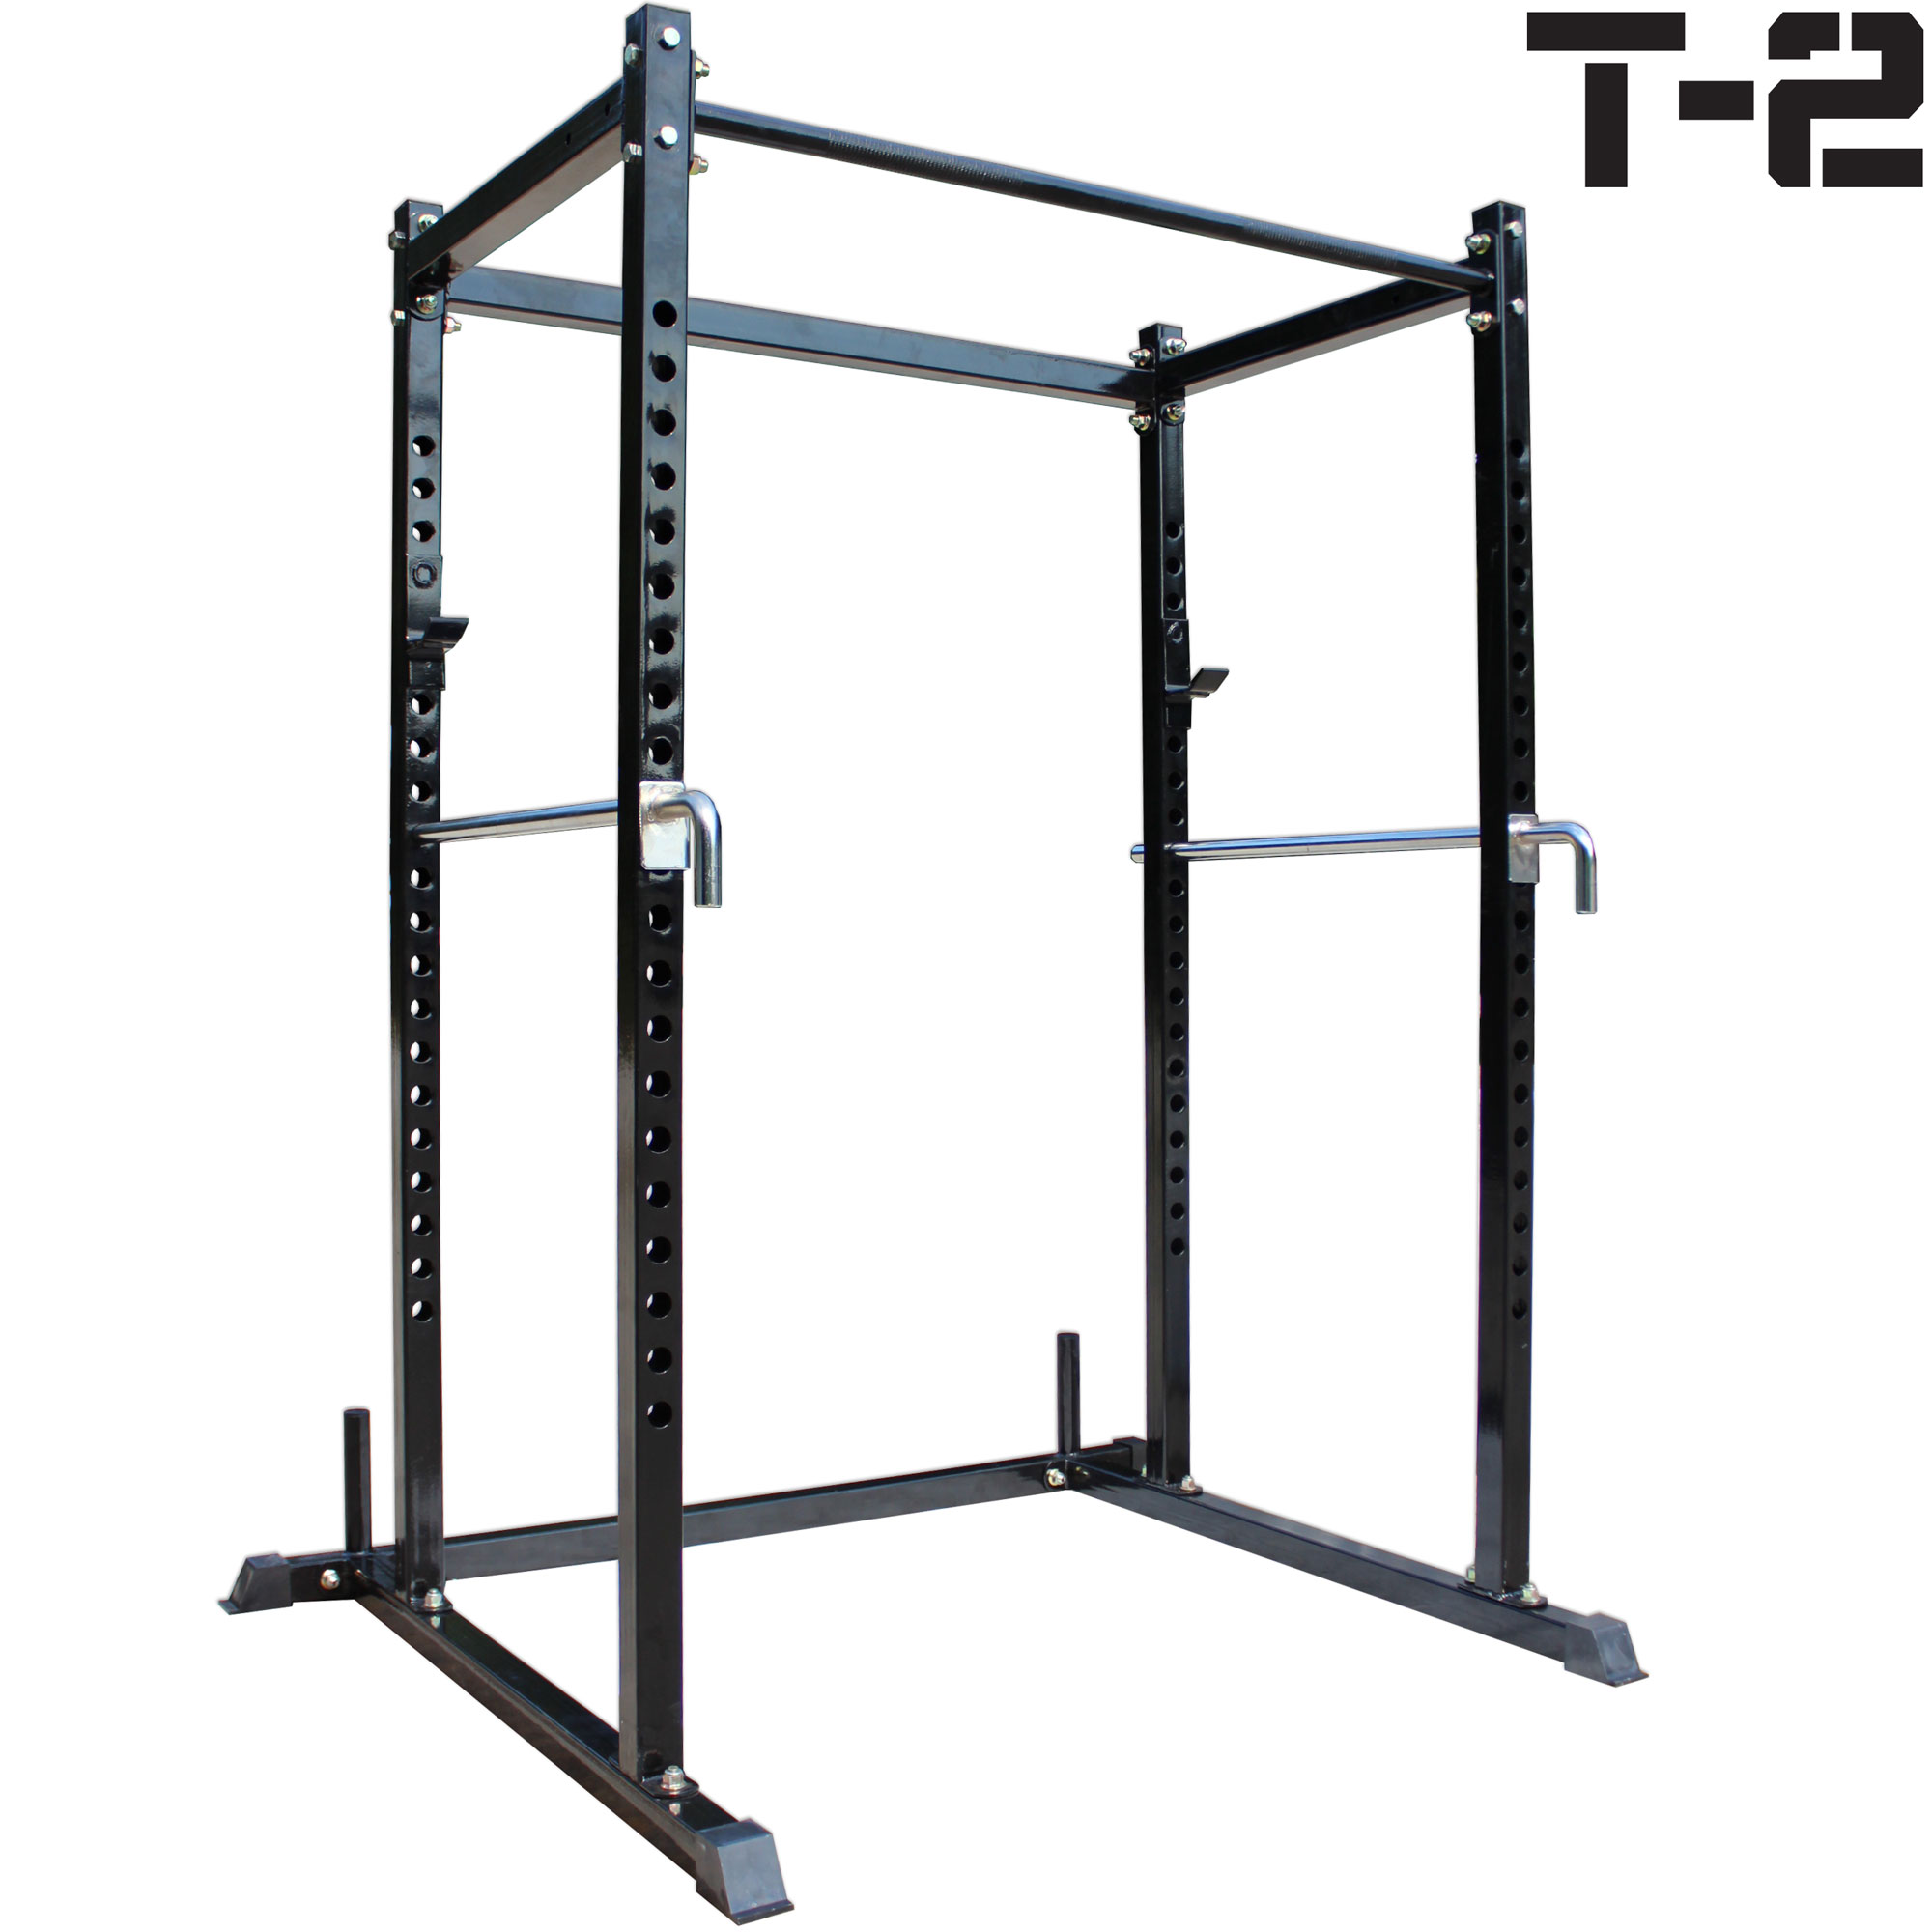 Titan T-2 Series Short Power Rack w Dip Bars Lift Cage Bench cross fit pull up by Titan Fitness